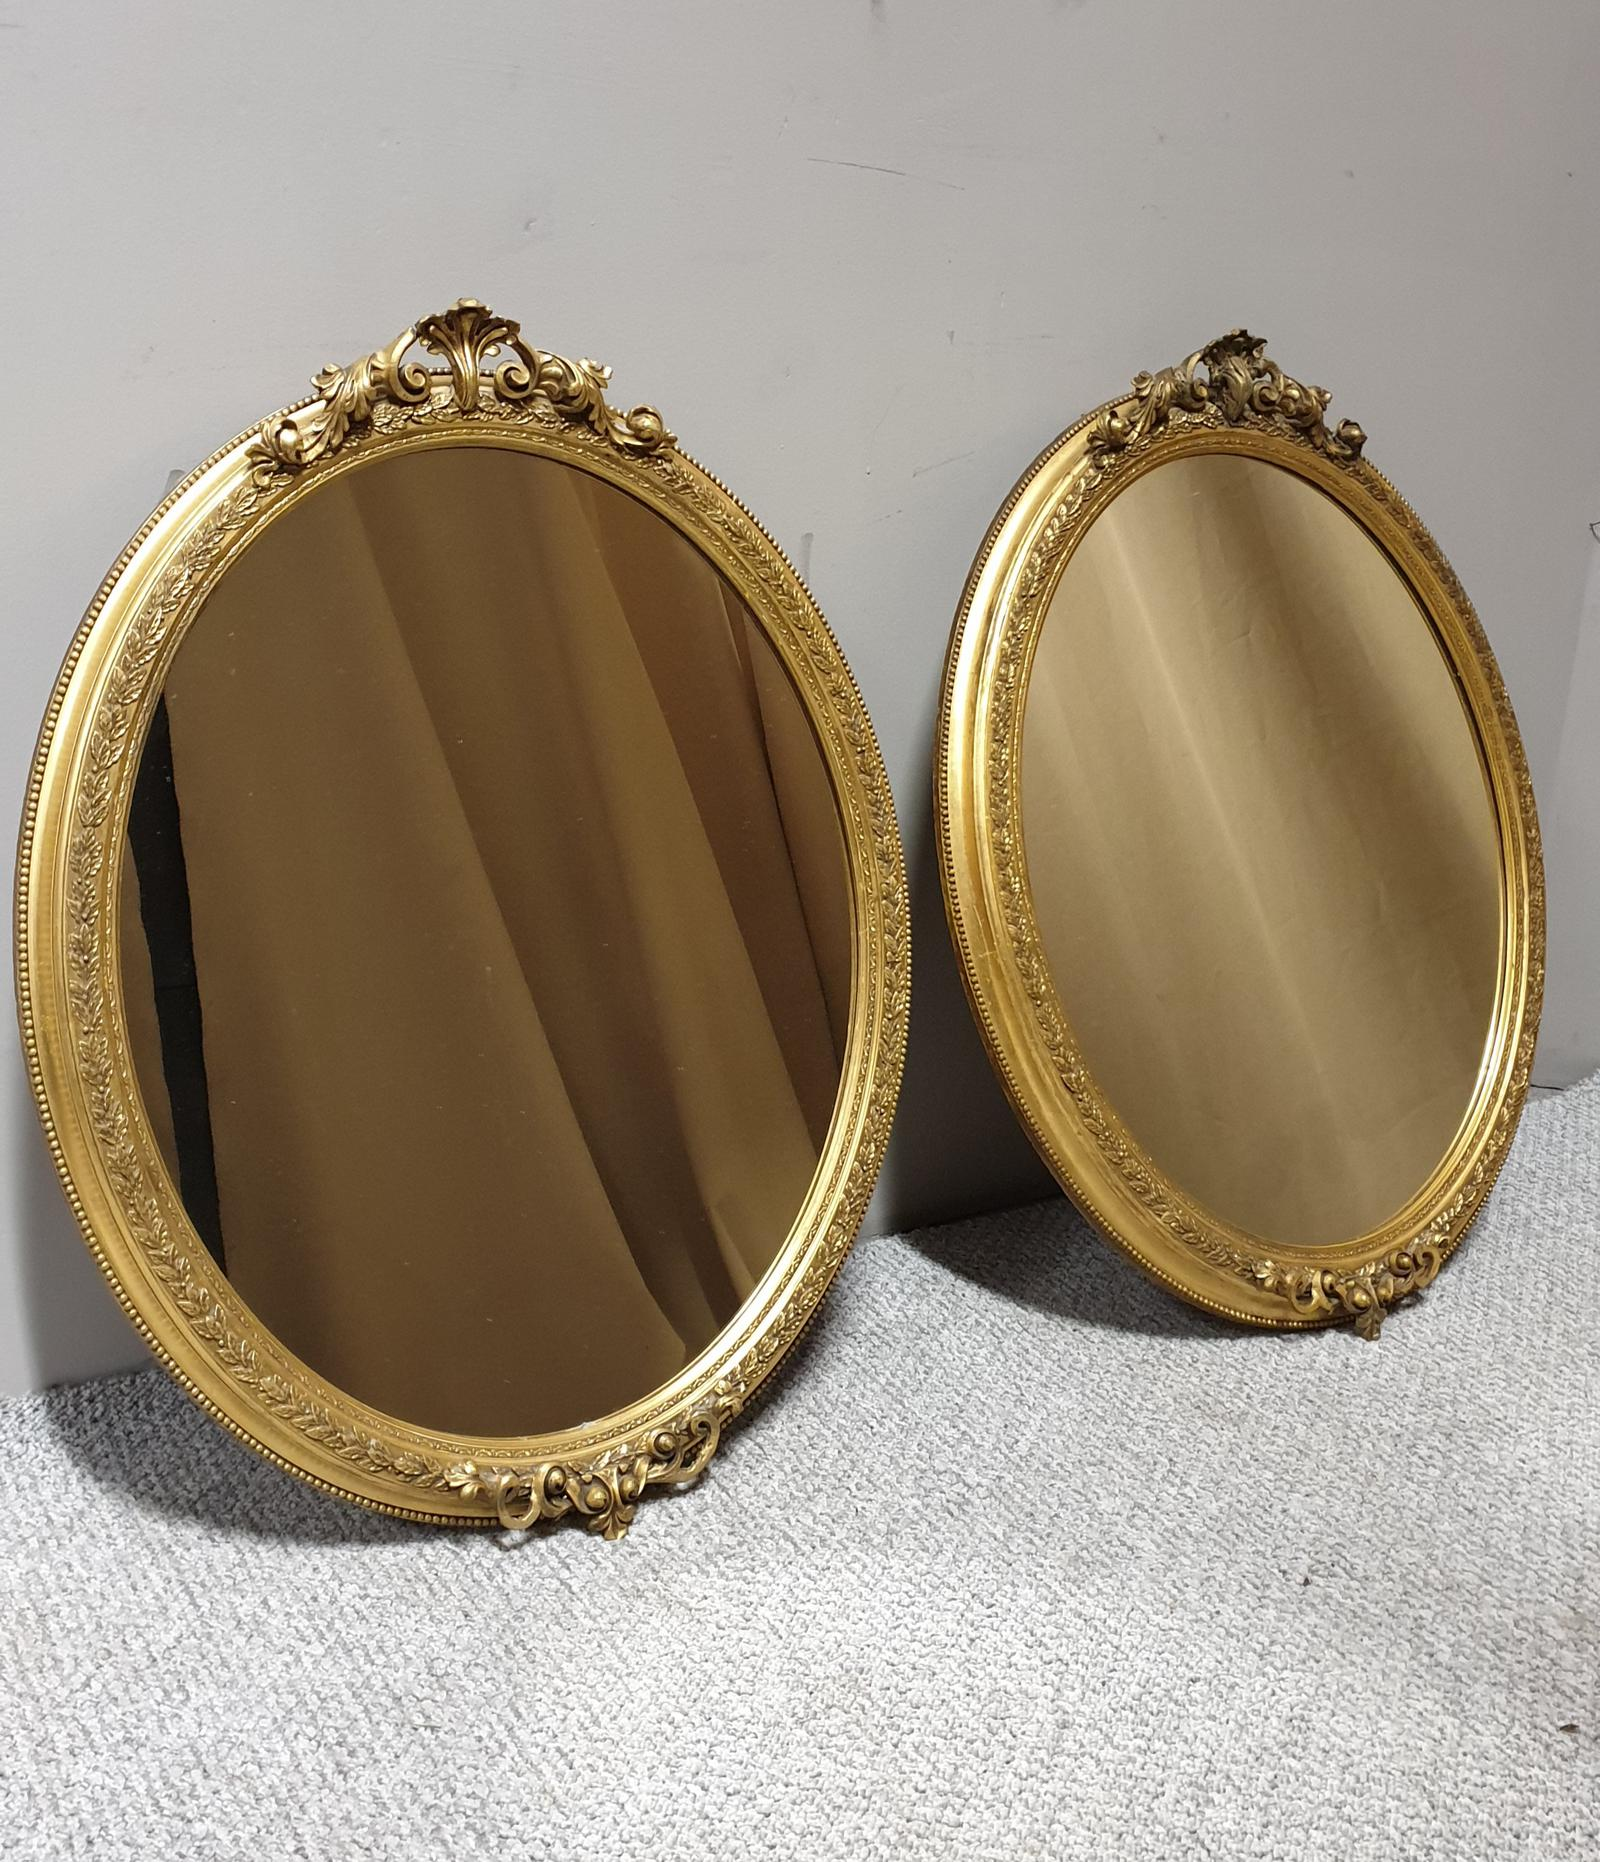 Superb Quality Victorian Oval Gilt Wall Mirrors (1 of 1)